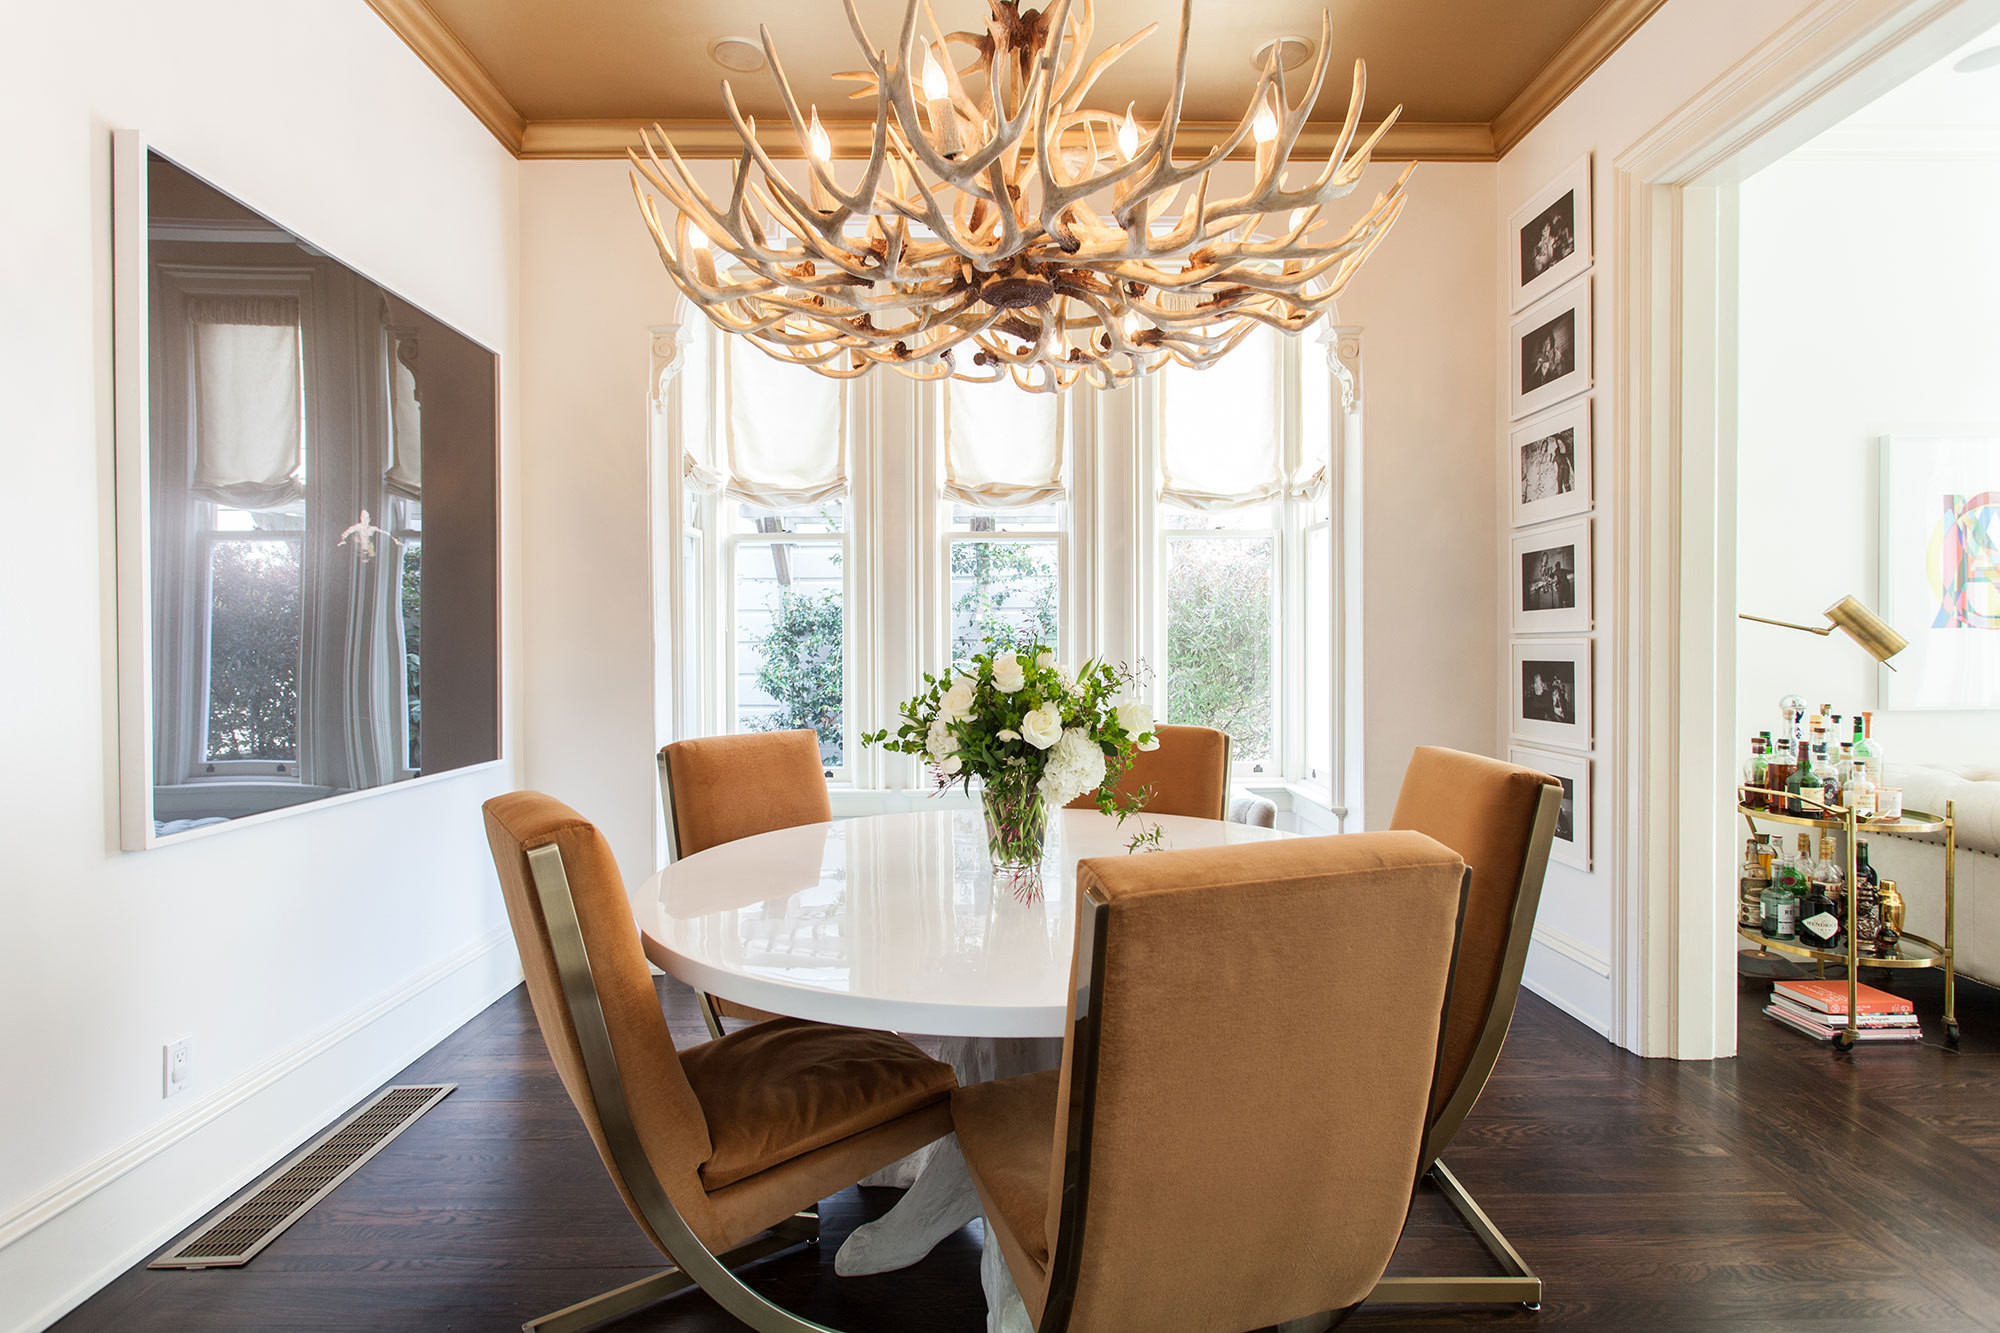 An antler chandelier lends an organic touch in the sleekdining room of a San Francisco home owned by Jessica and Matt Farron and designed by Leanne Ford.